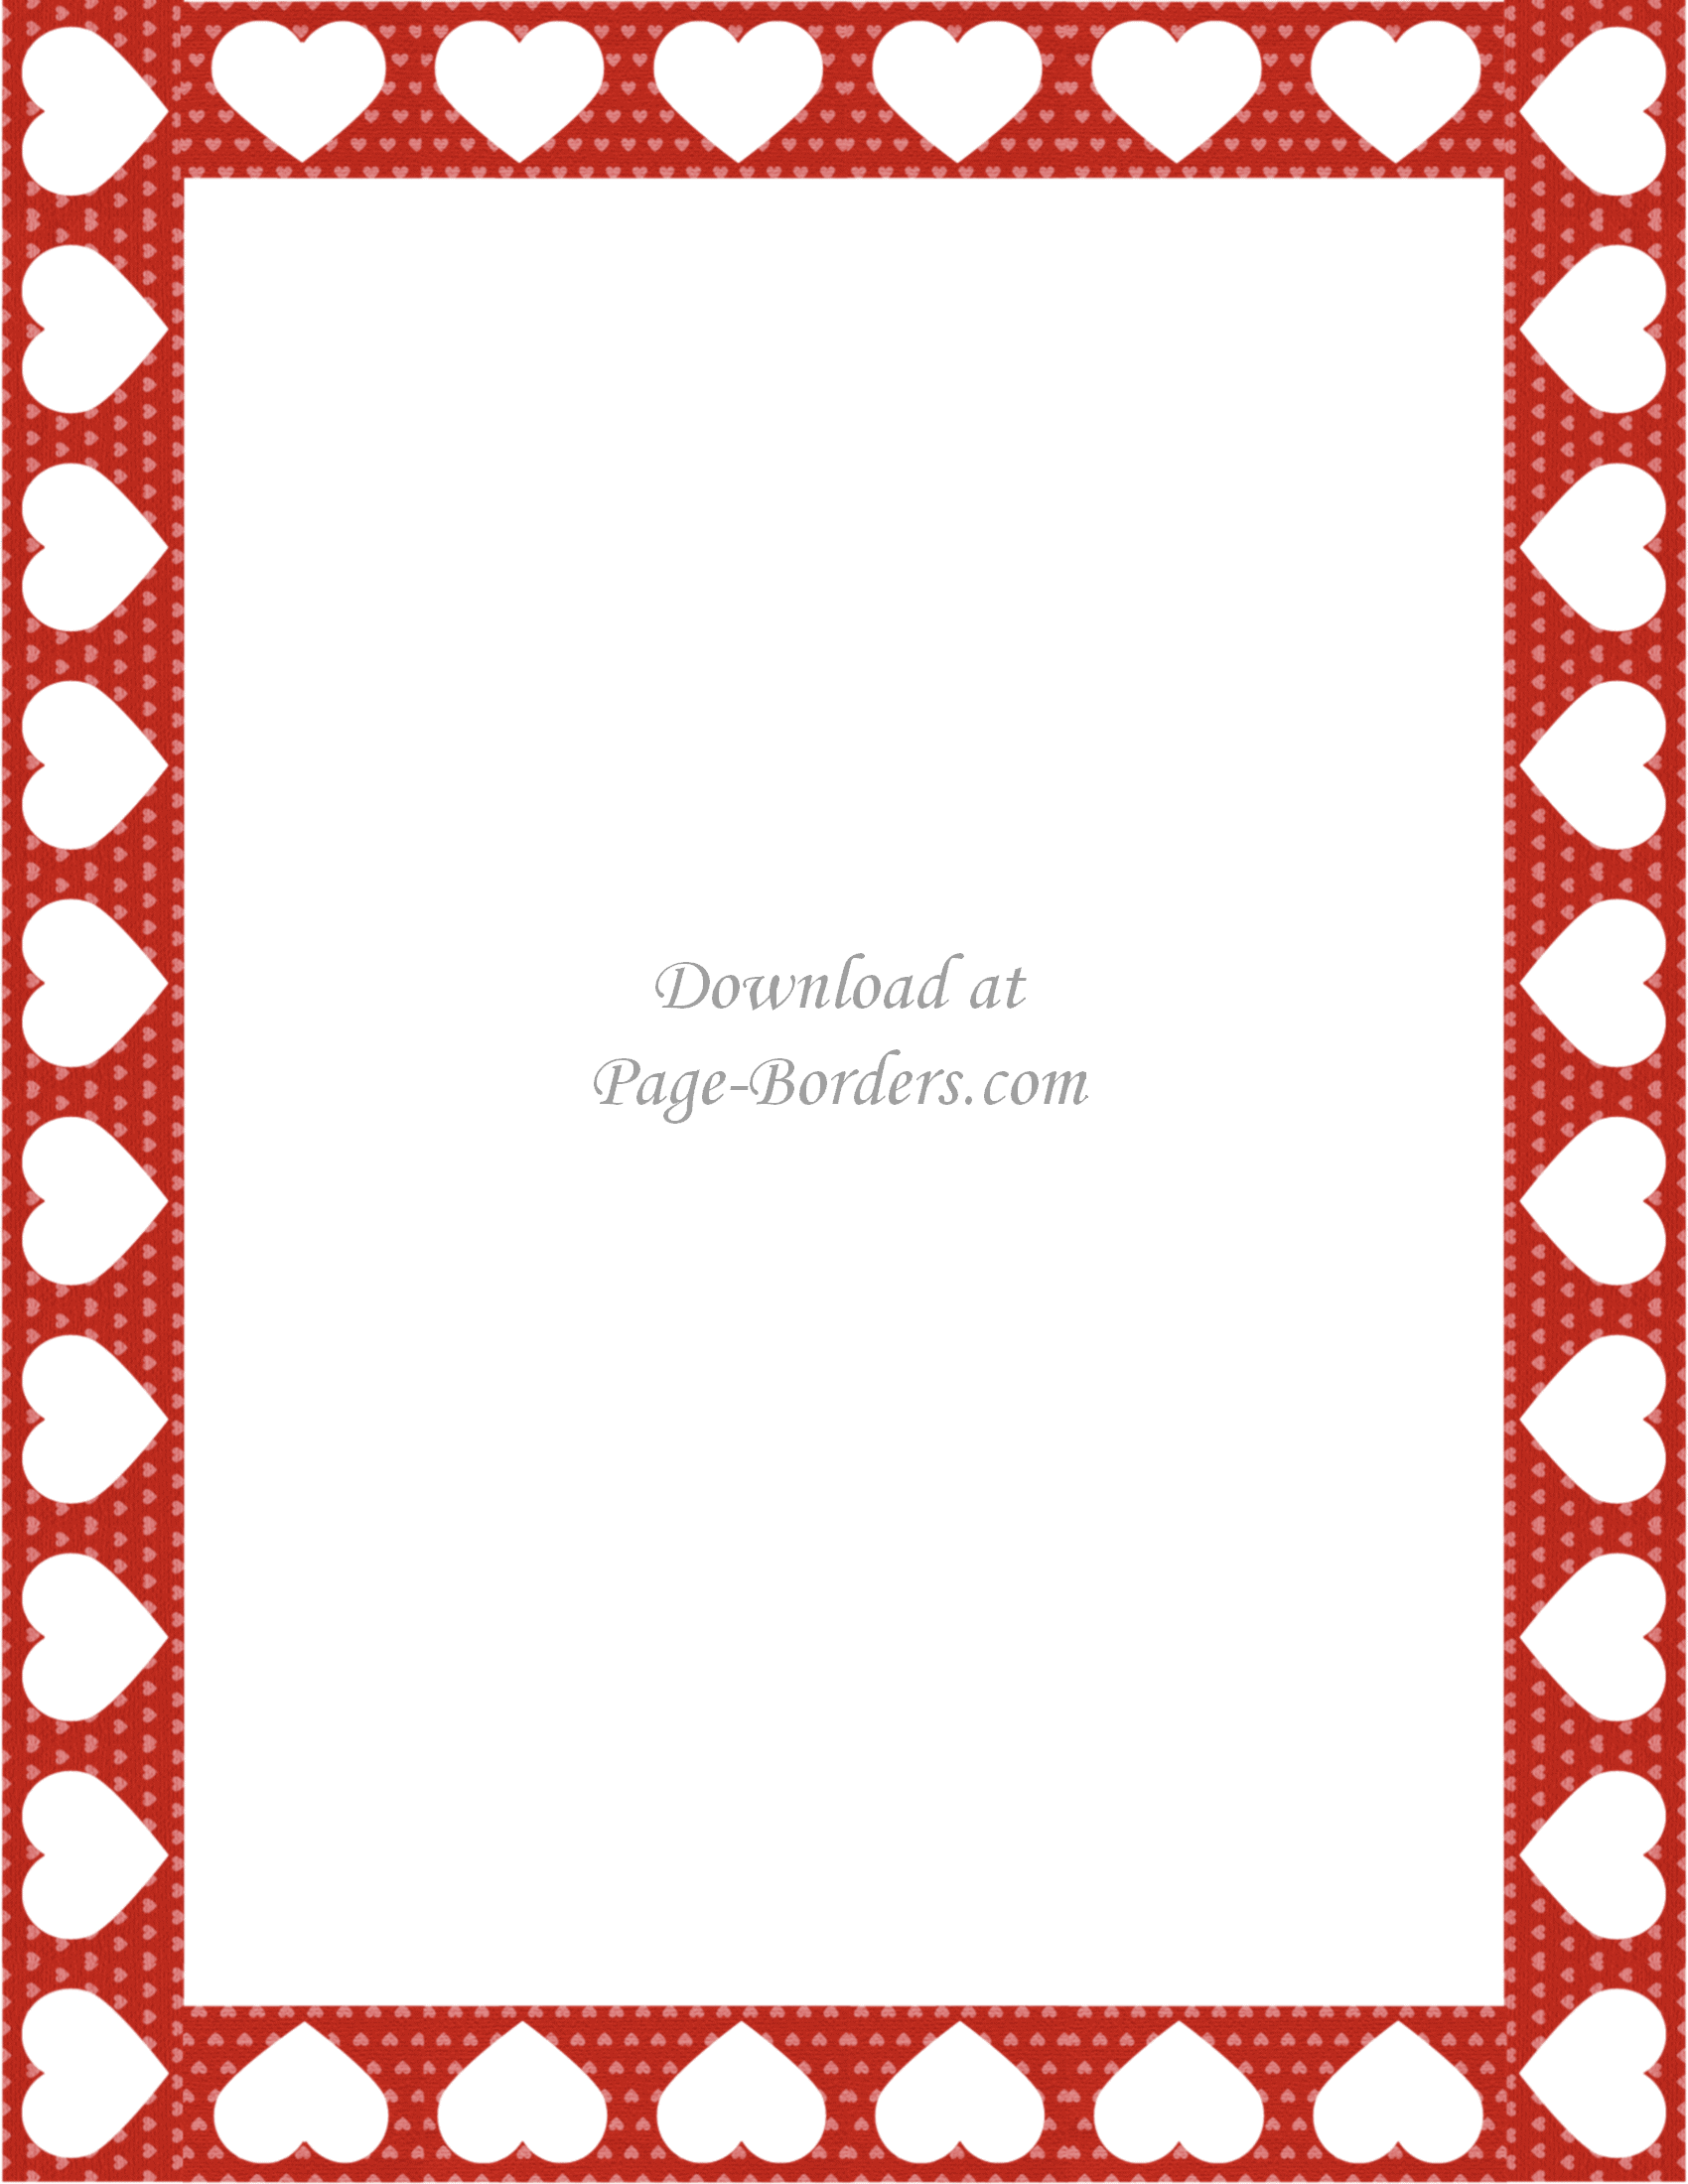 picture regarding Valentine Borders Free Printable referred to as No cost Printable Center Border Personalize on the internet or obtain as is